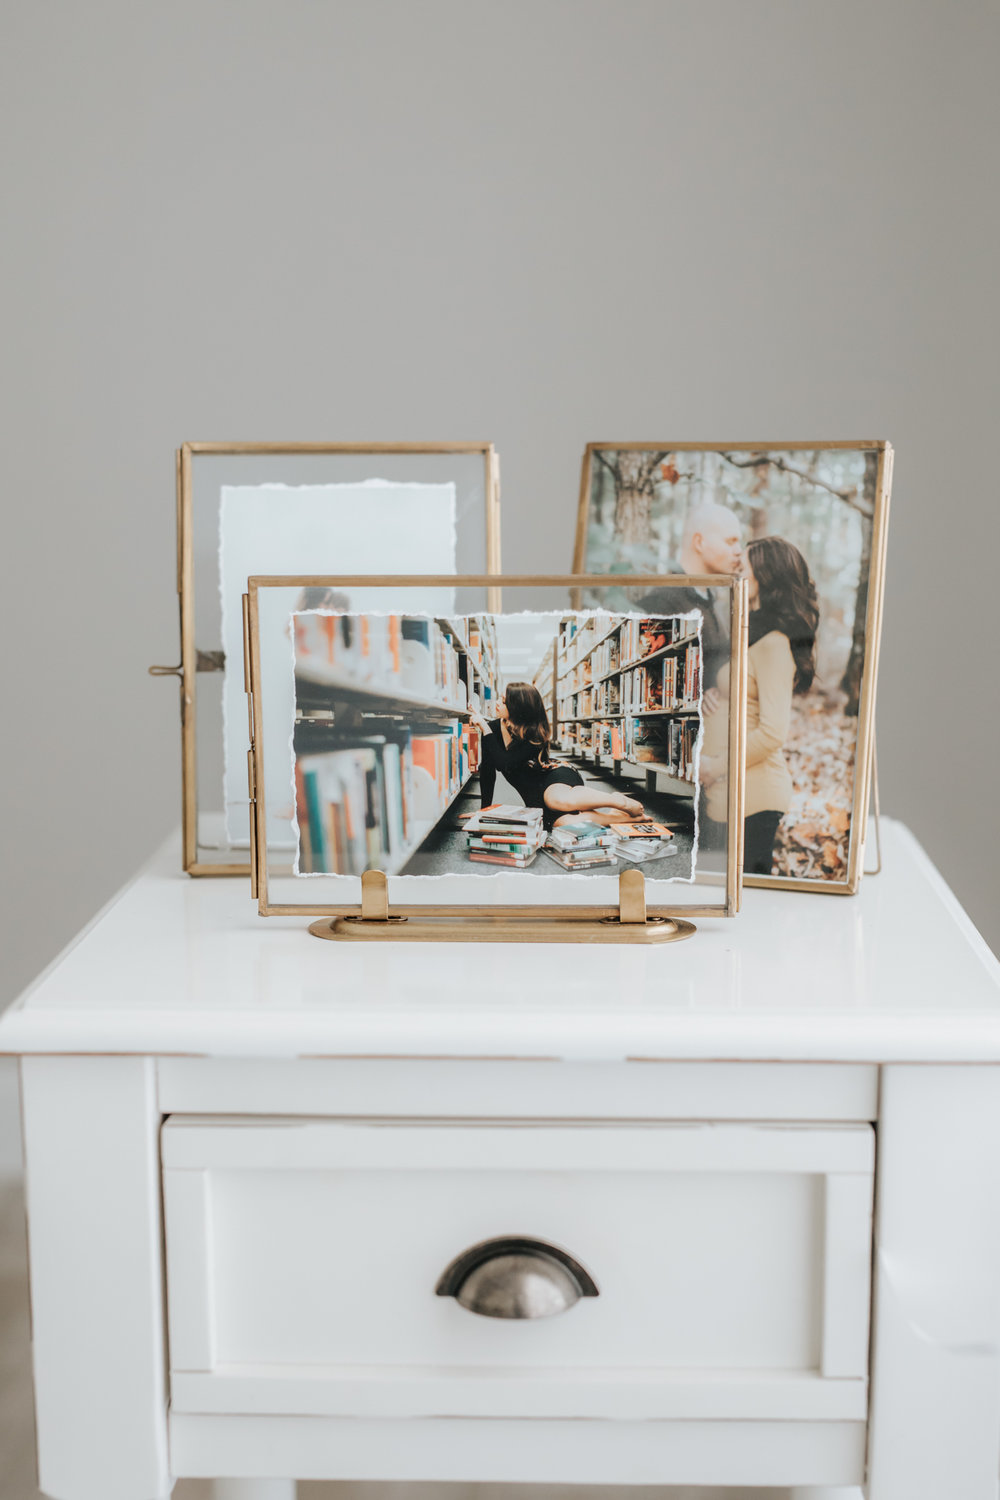 Vintage Brass Frame   Vintage brass frames only come in 5x7 with either a 4x6 print with torn edges (pictured in front) or 5x7 print that fits the total frame (back right).